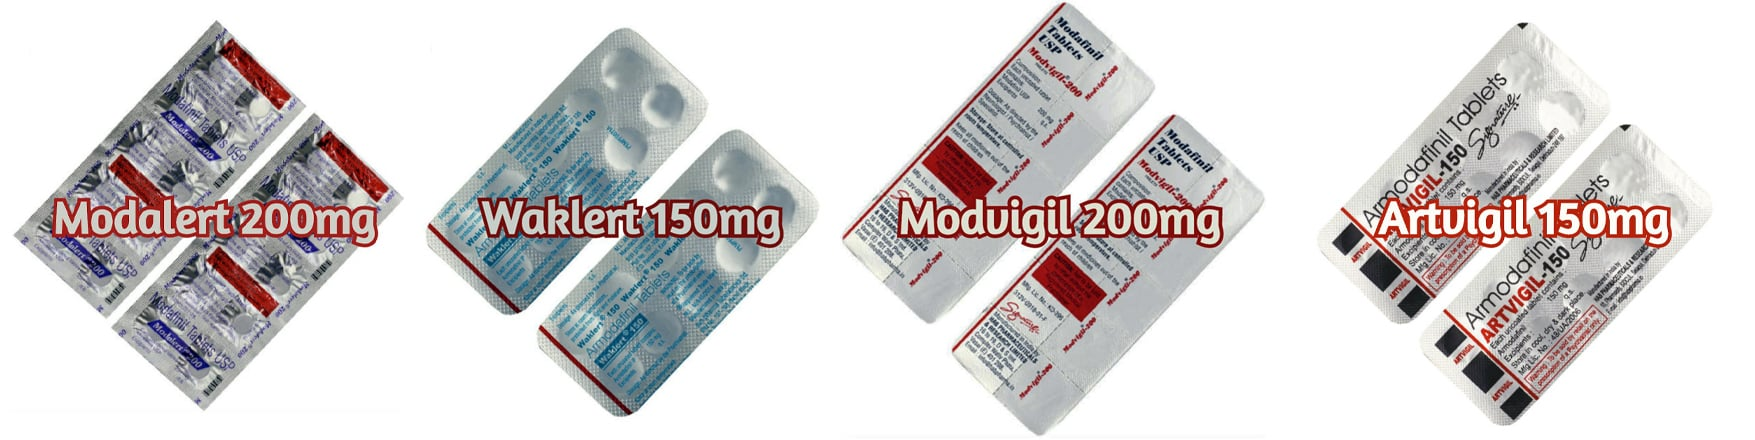 Afinil Express Which Modafinil is the Best